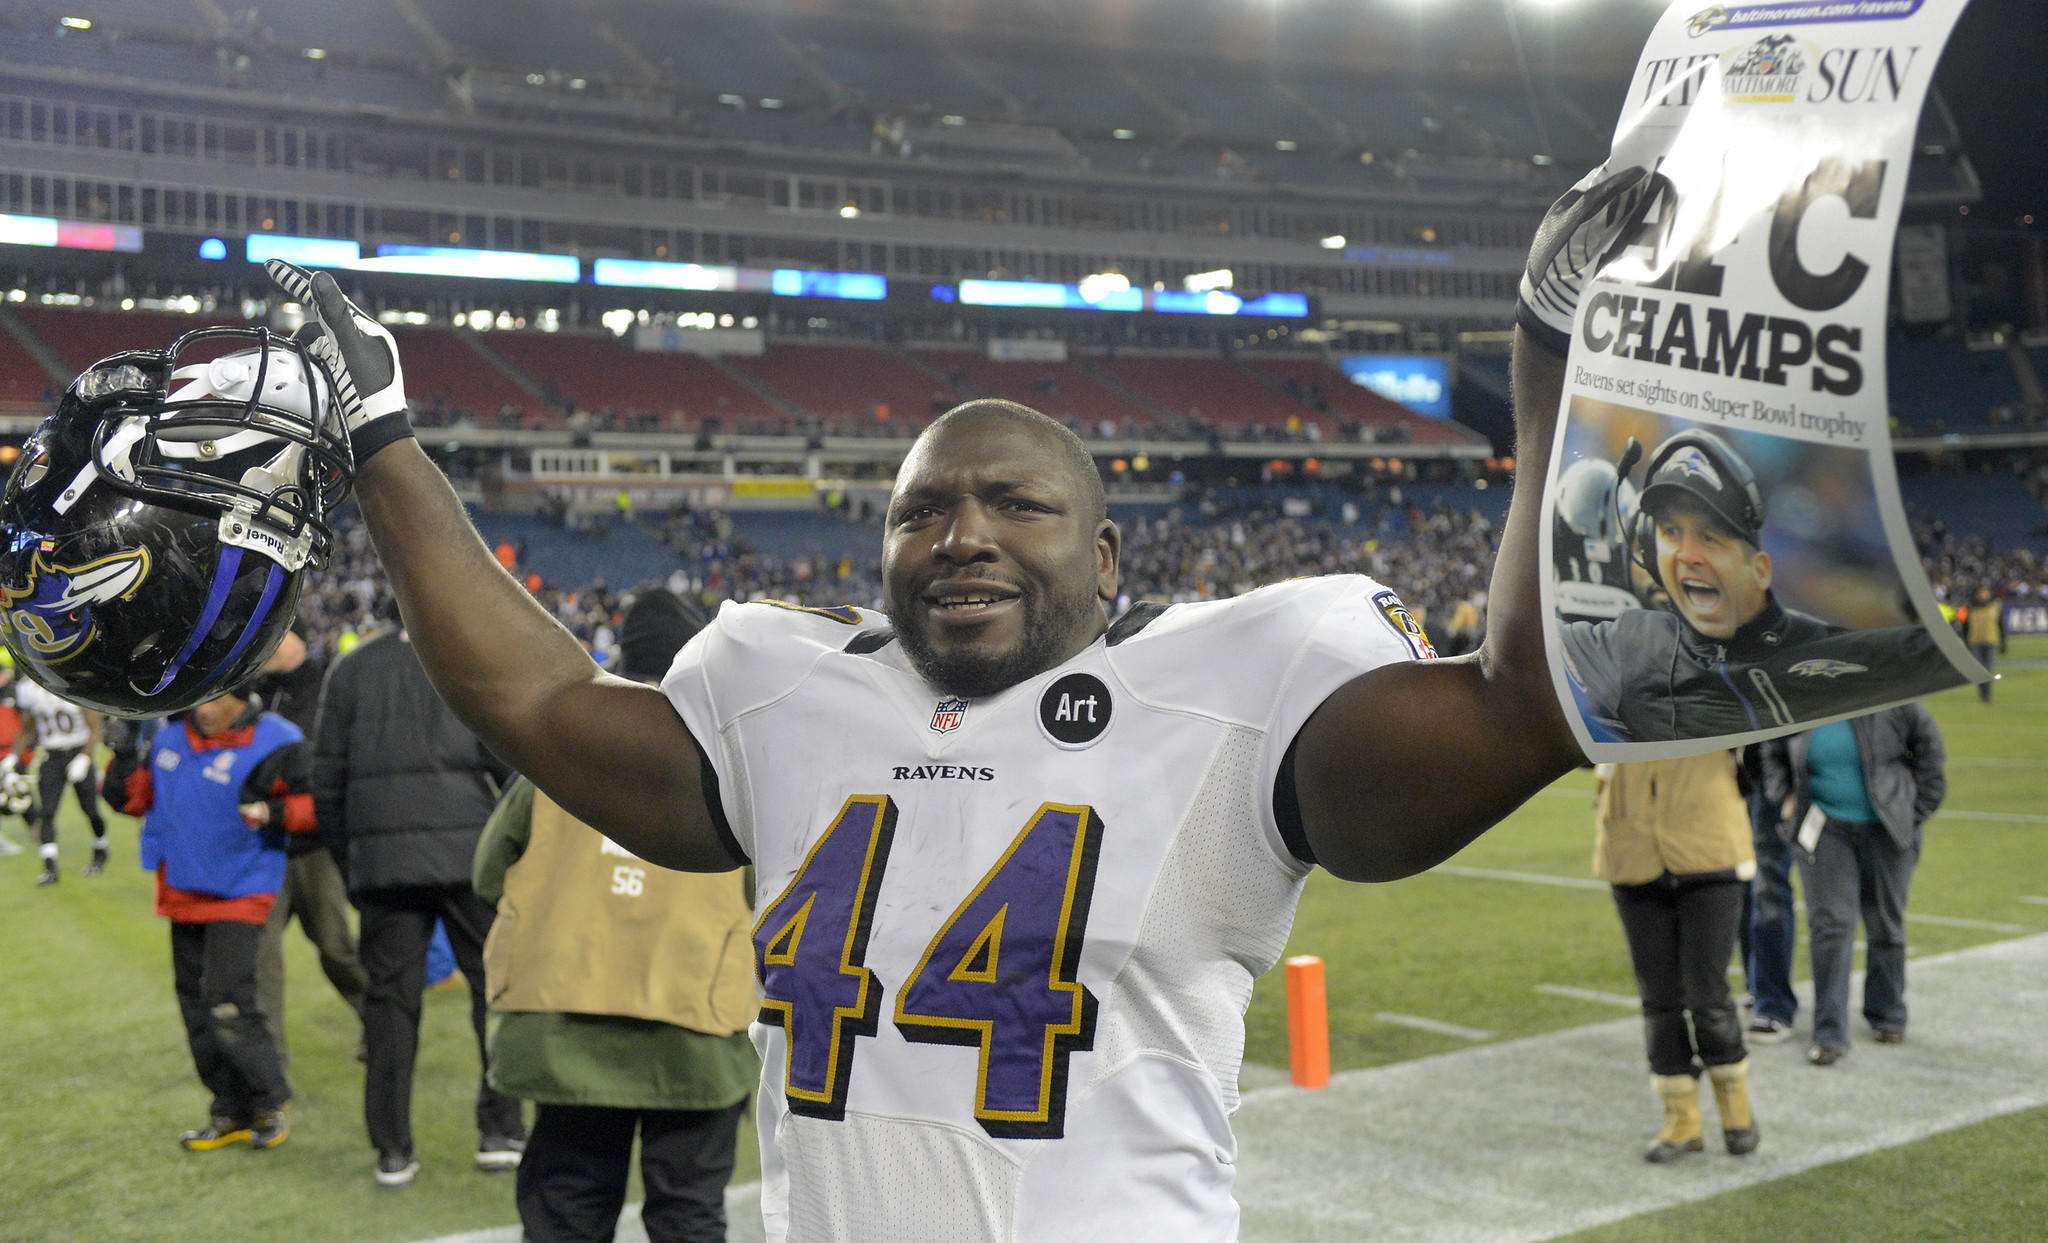 Fullback Vonta Leach was among the most popular players in the Ravens locker room.